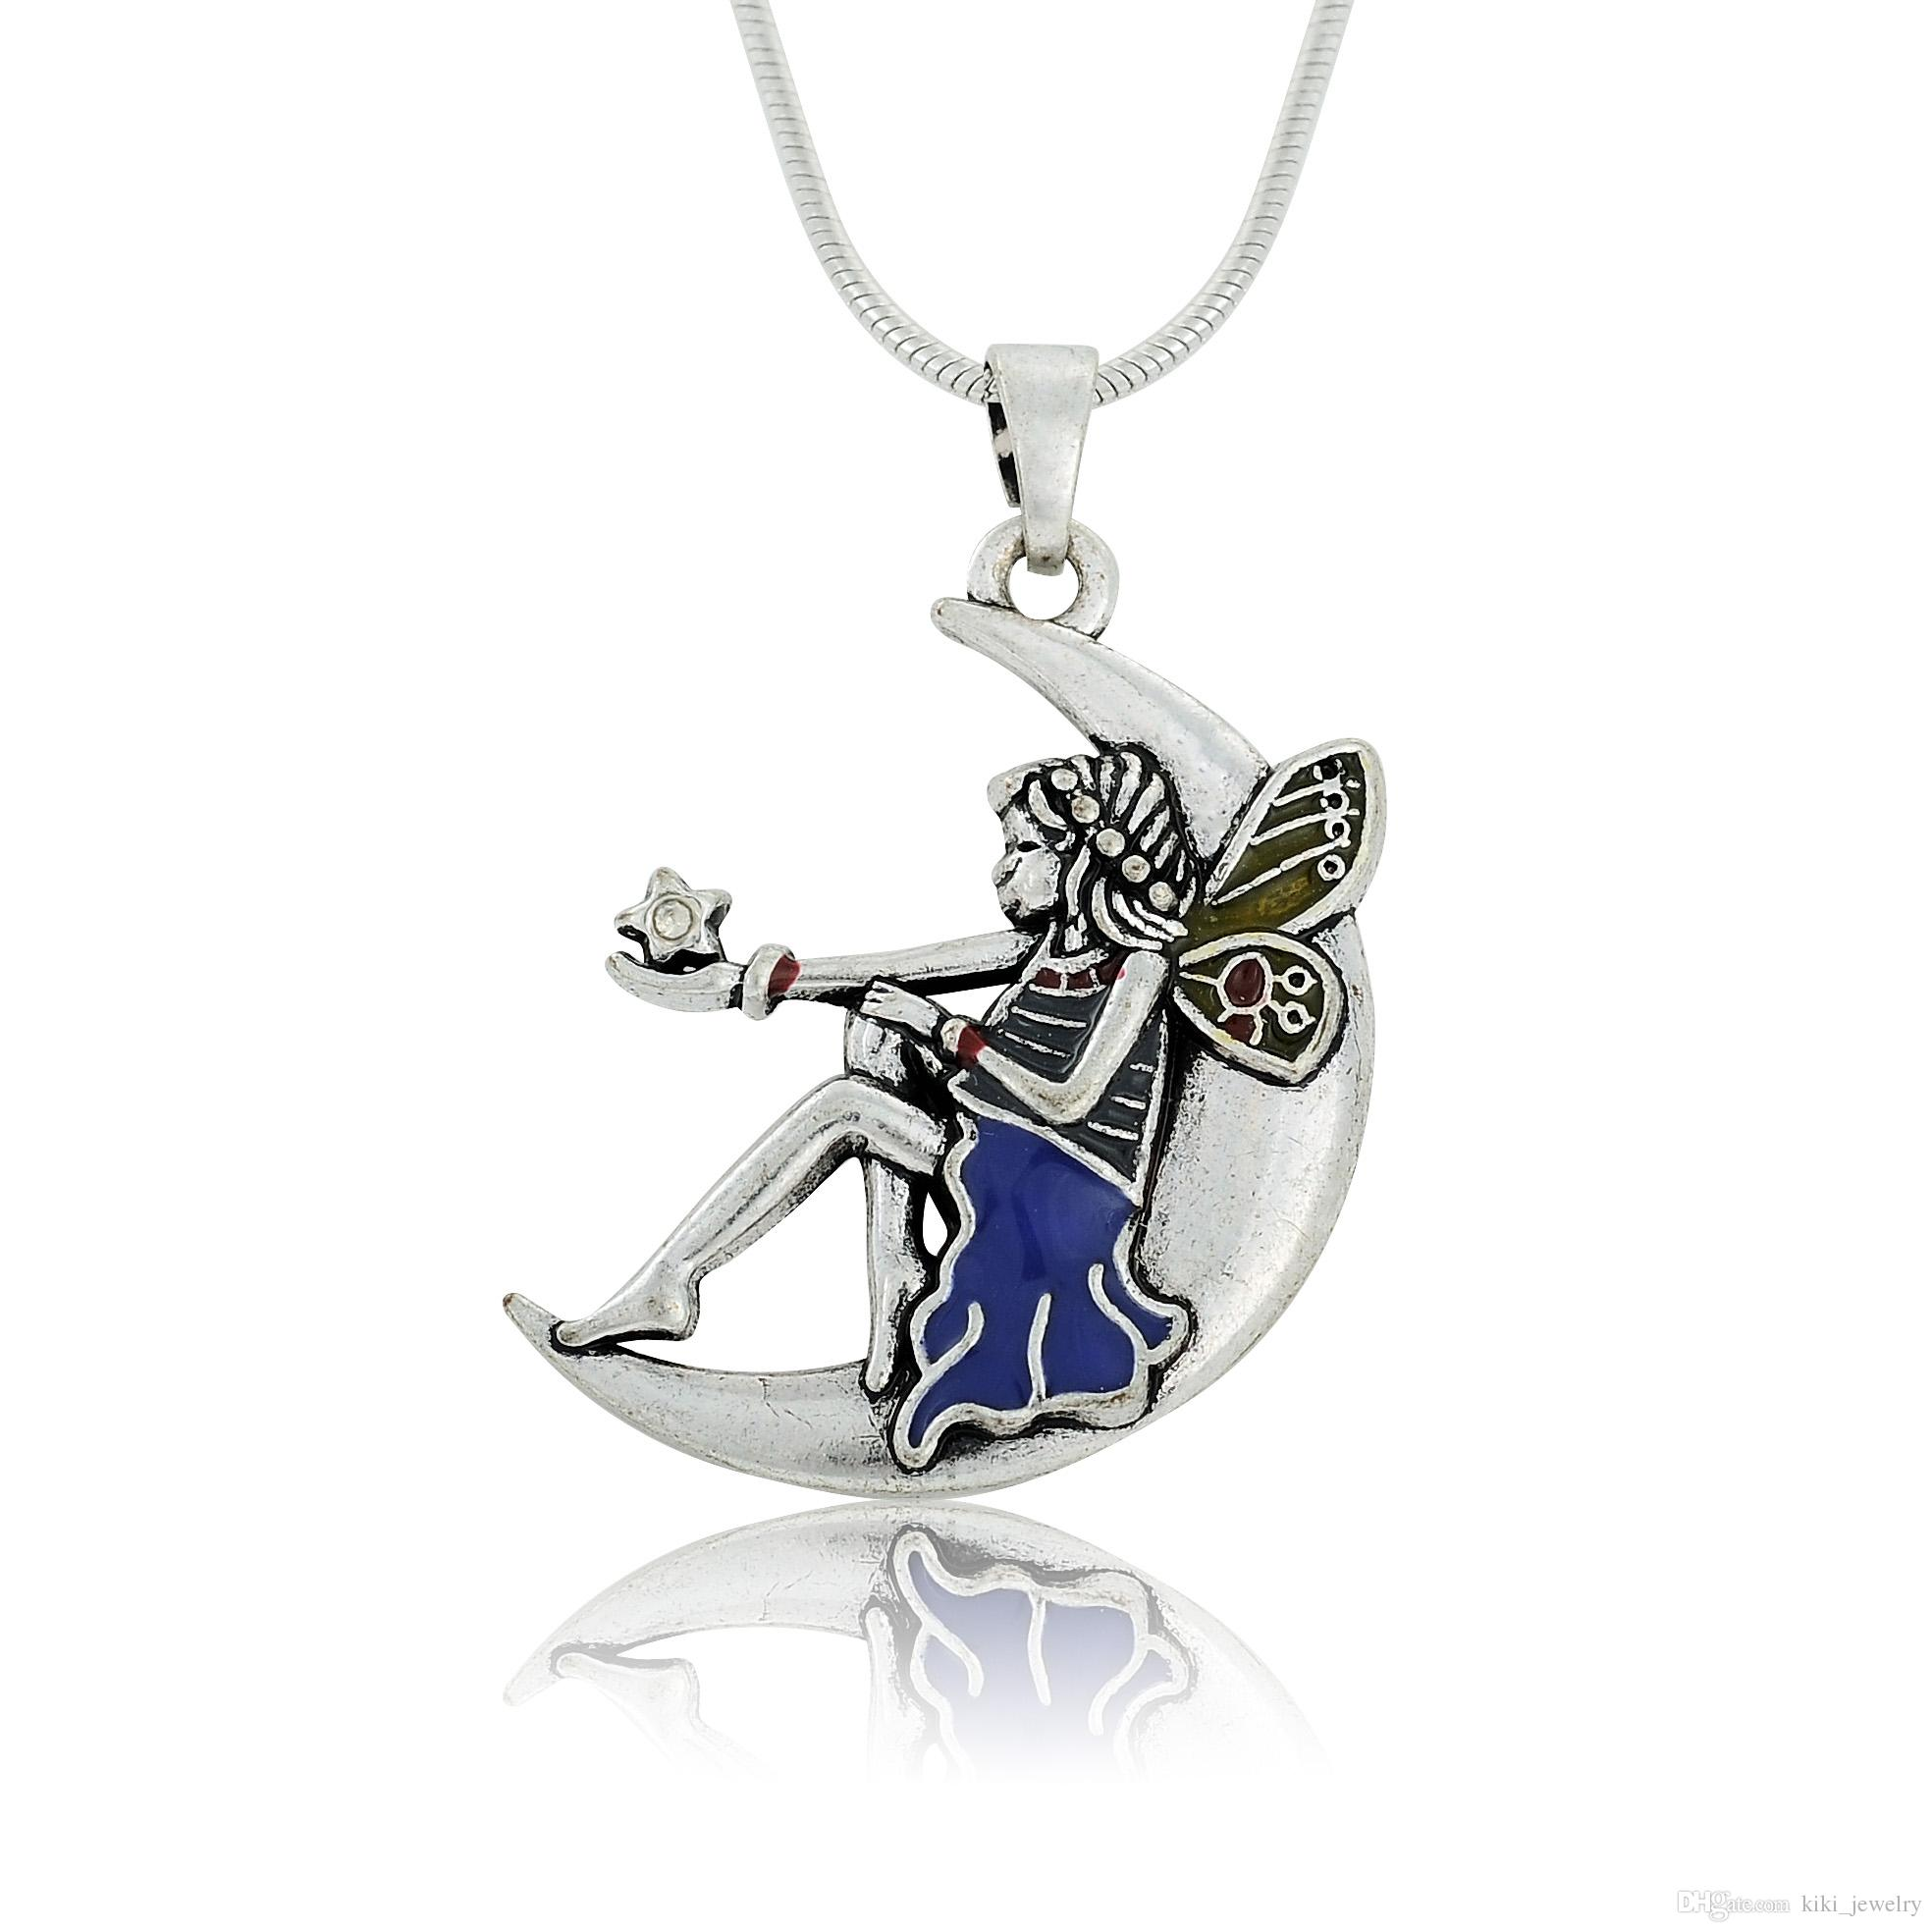 necklace today sterling watches silver shipping product jewelry dream fairy pendant moon free cgc overstock